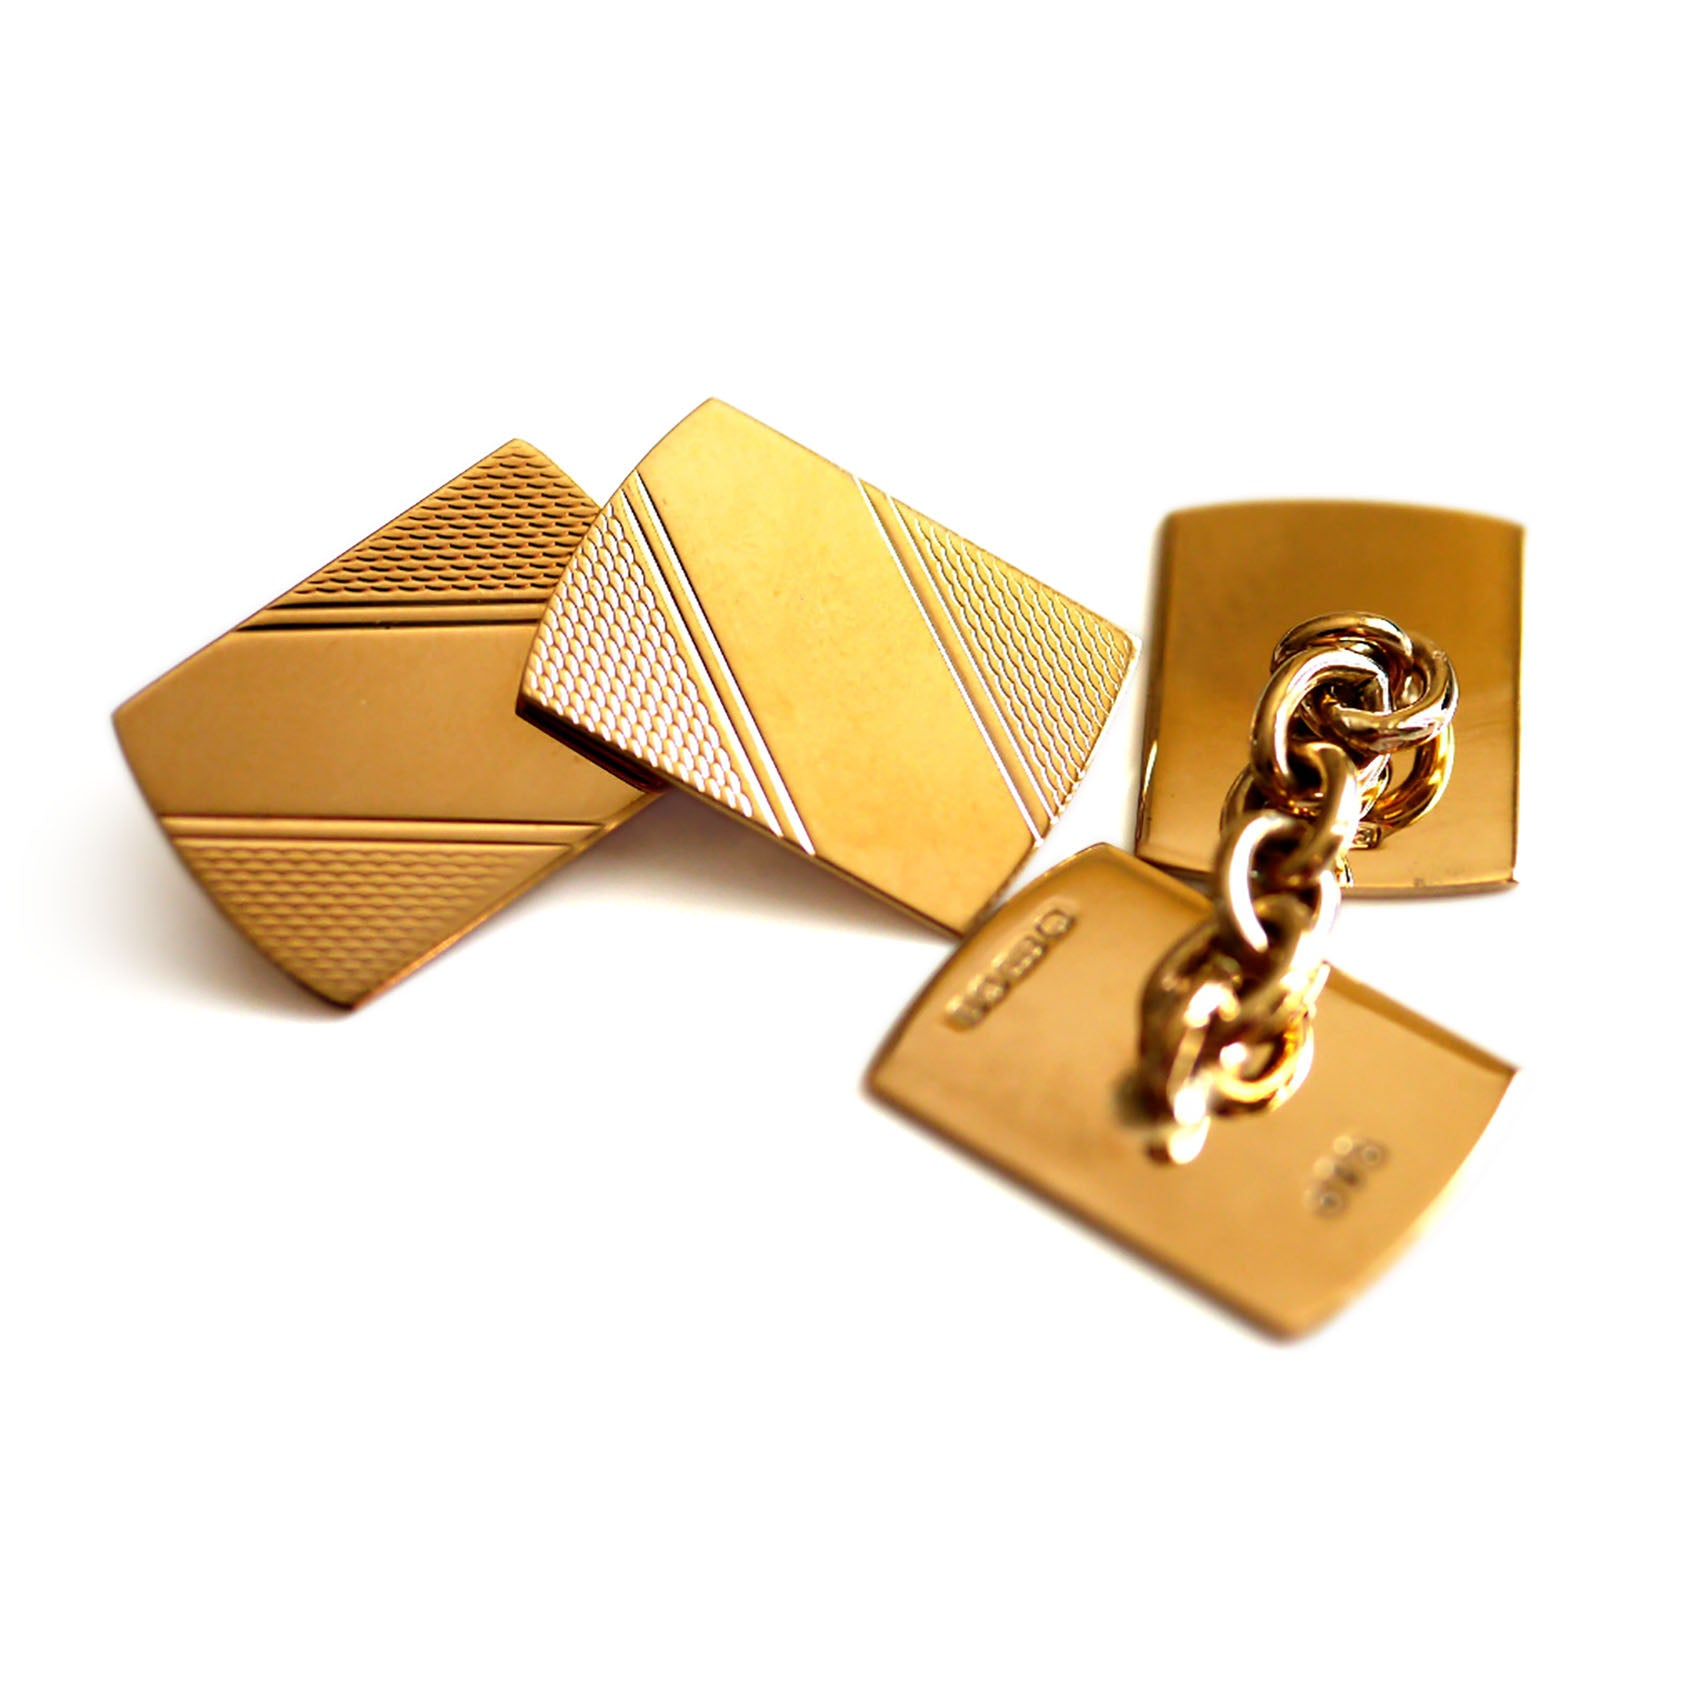 Gold Glorious Gold: Rectangular Cufflinks